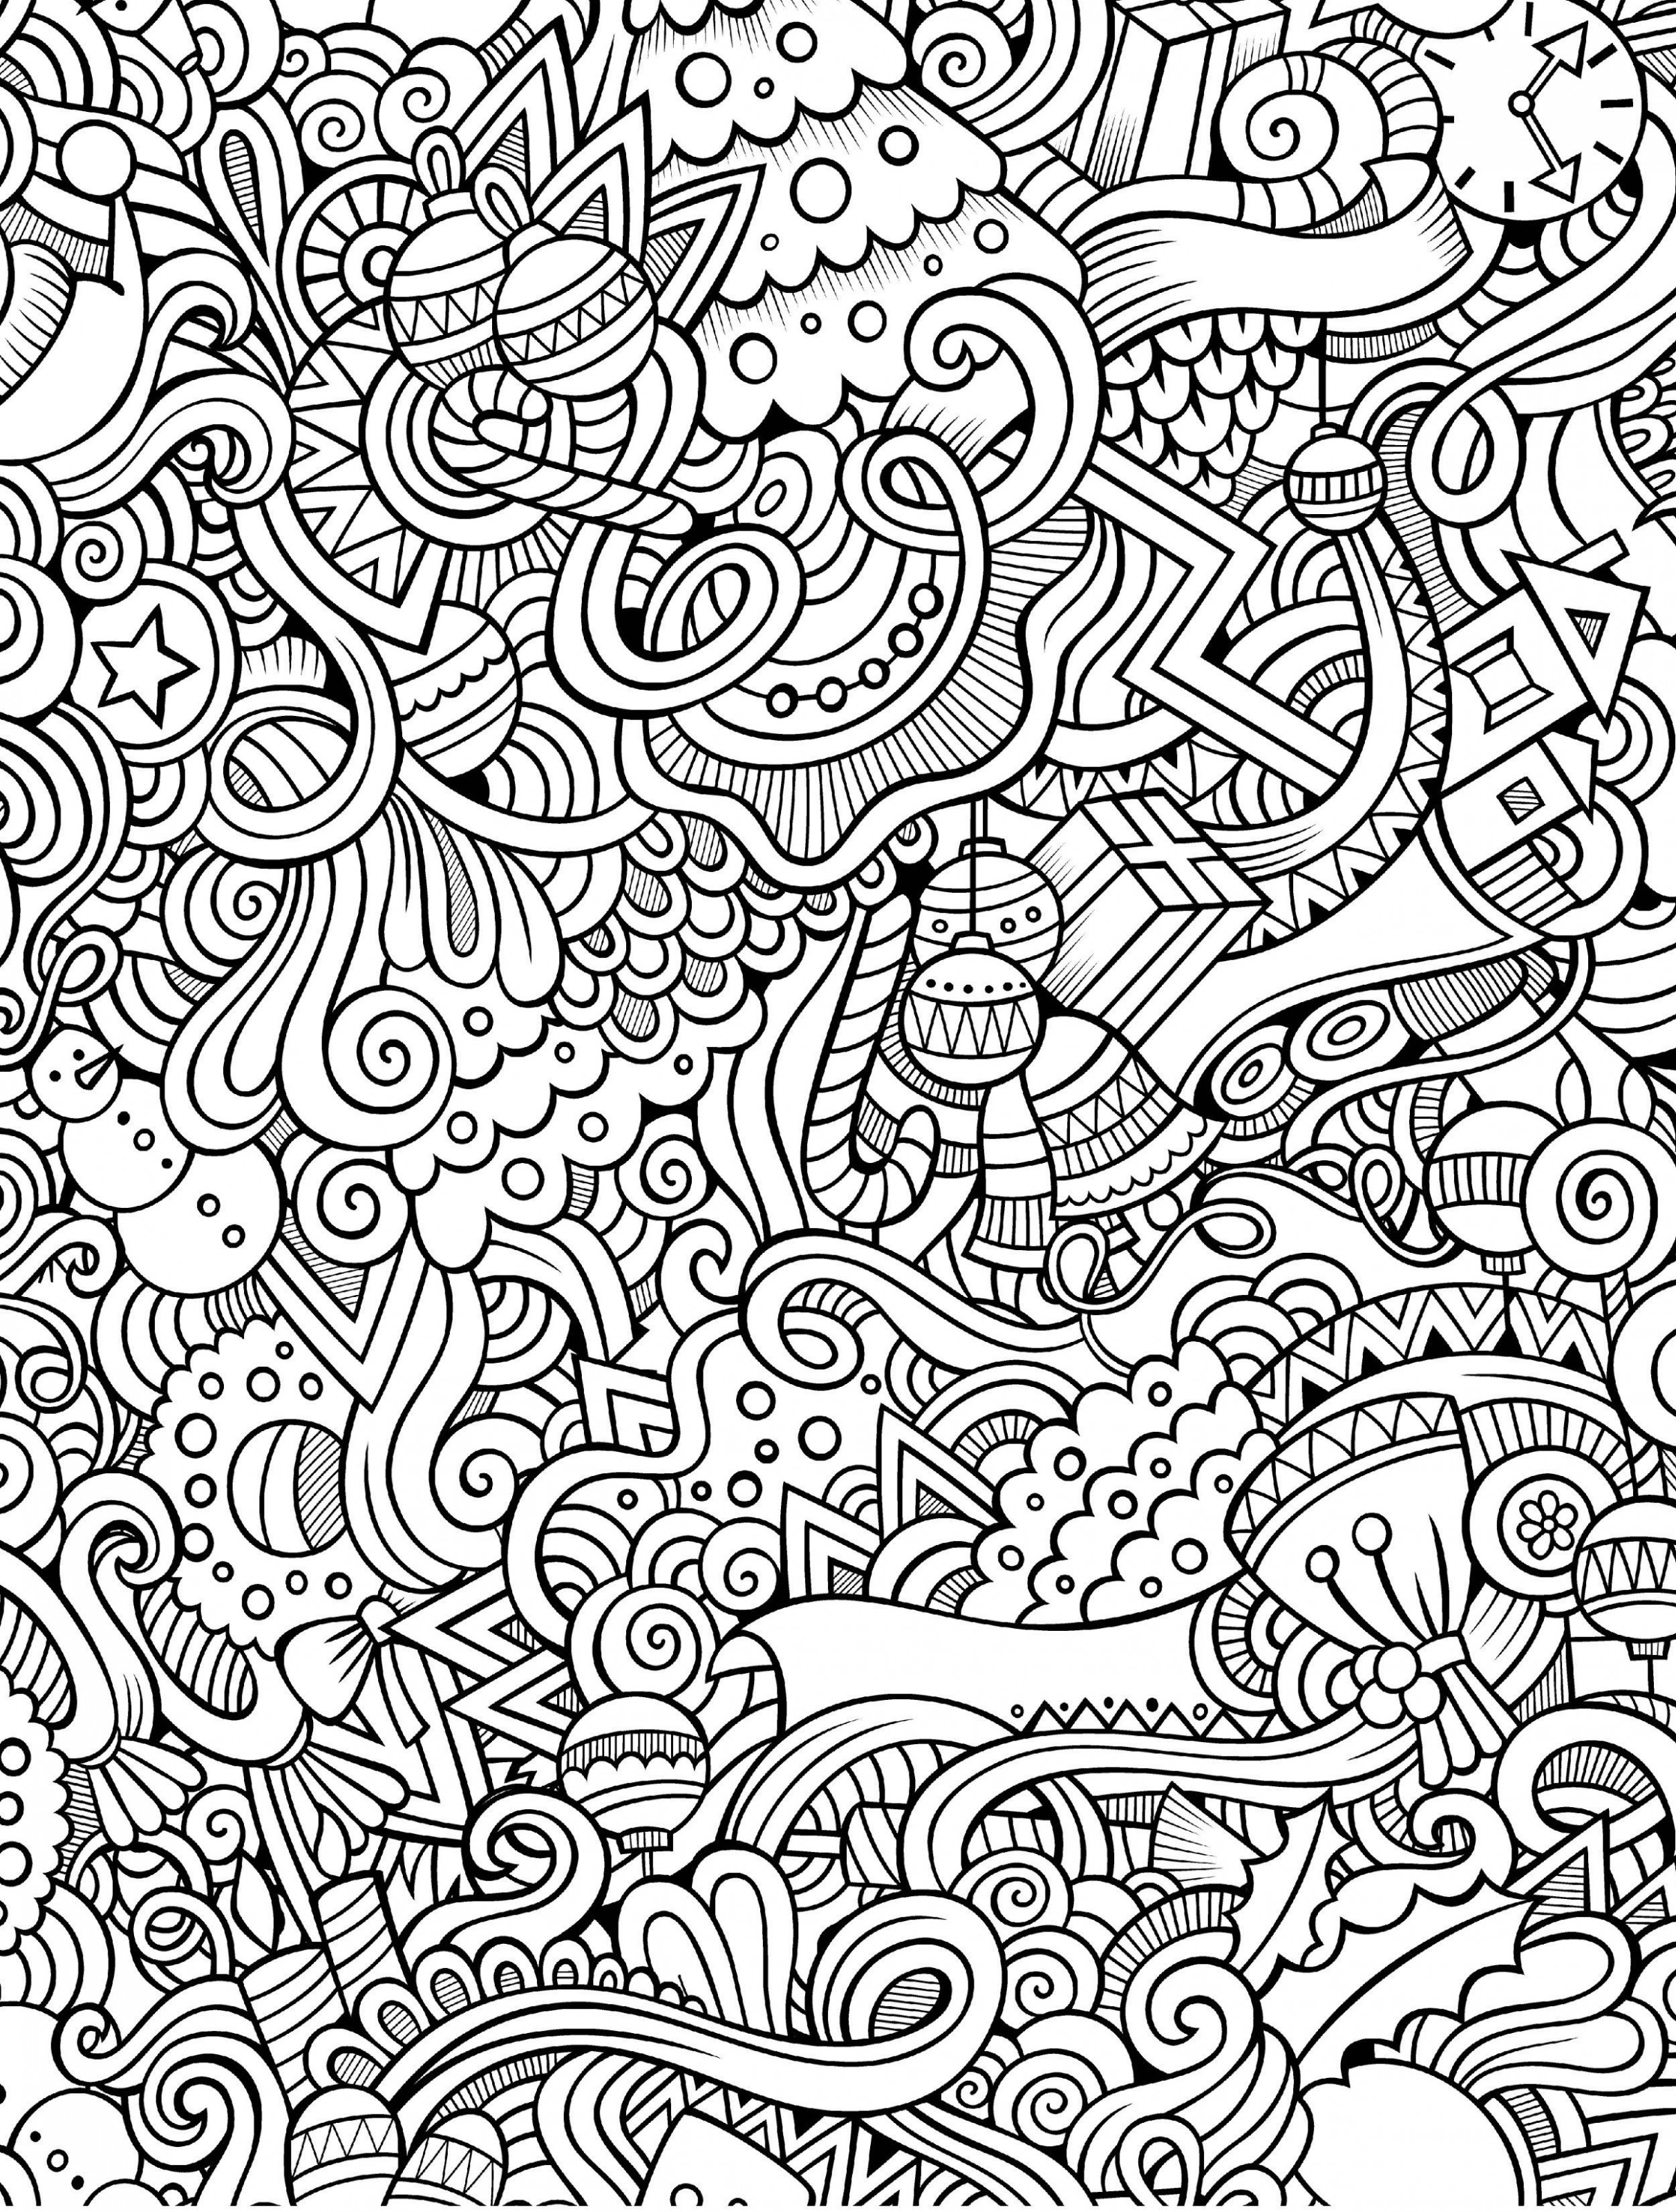 14 Free Printable Holiday Adult Coloring Pages | Coloring pages ..